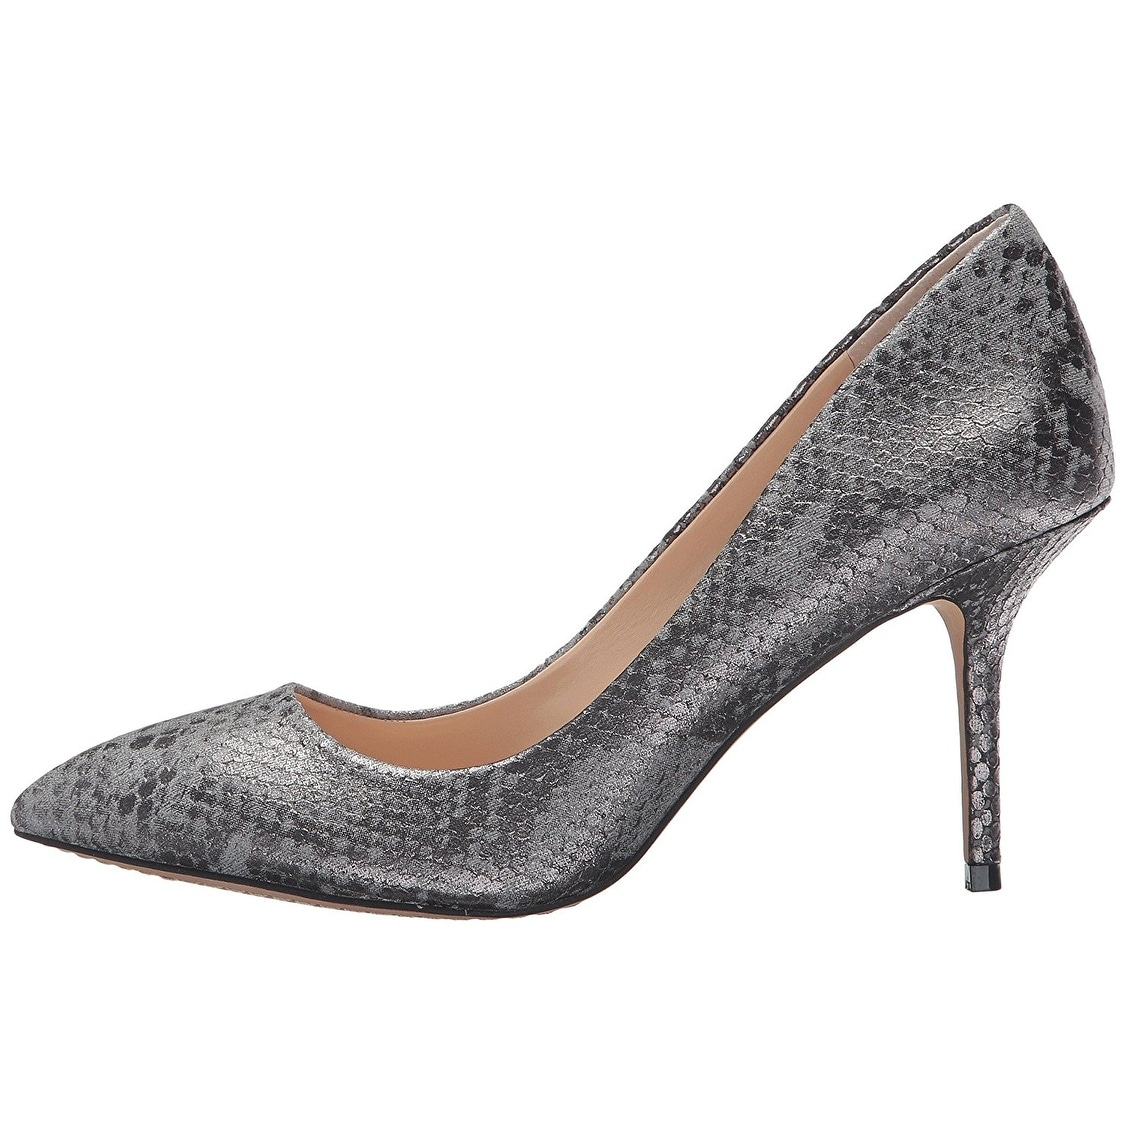 Vince Camuto Womens Salest Pointed Toe Classic Pumps Silver Size 9.5